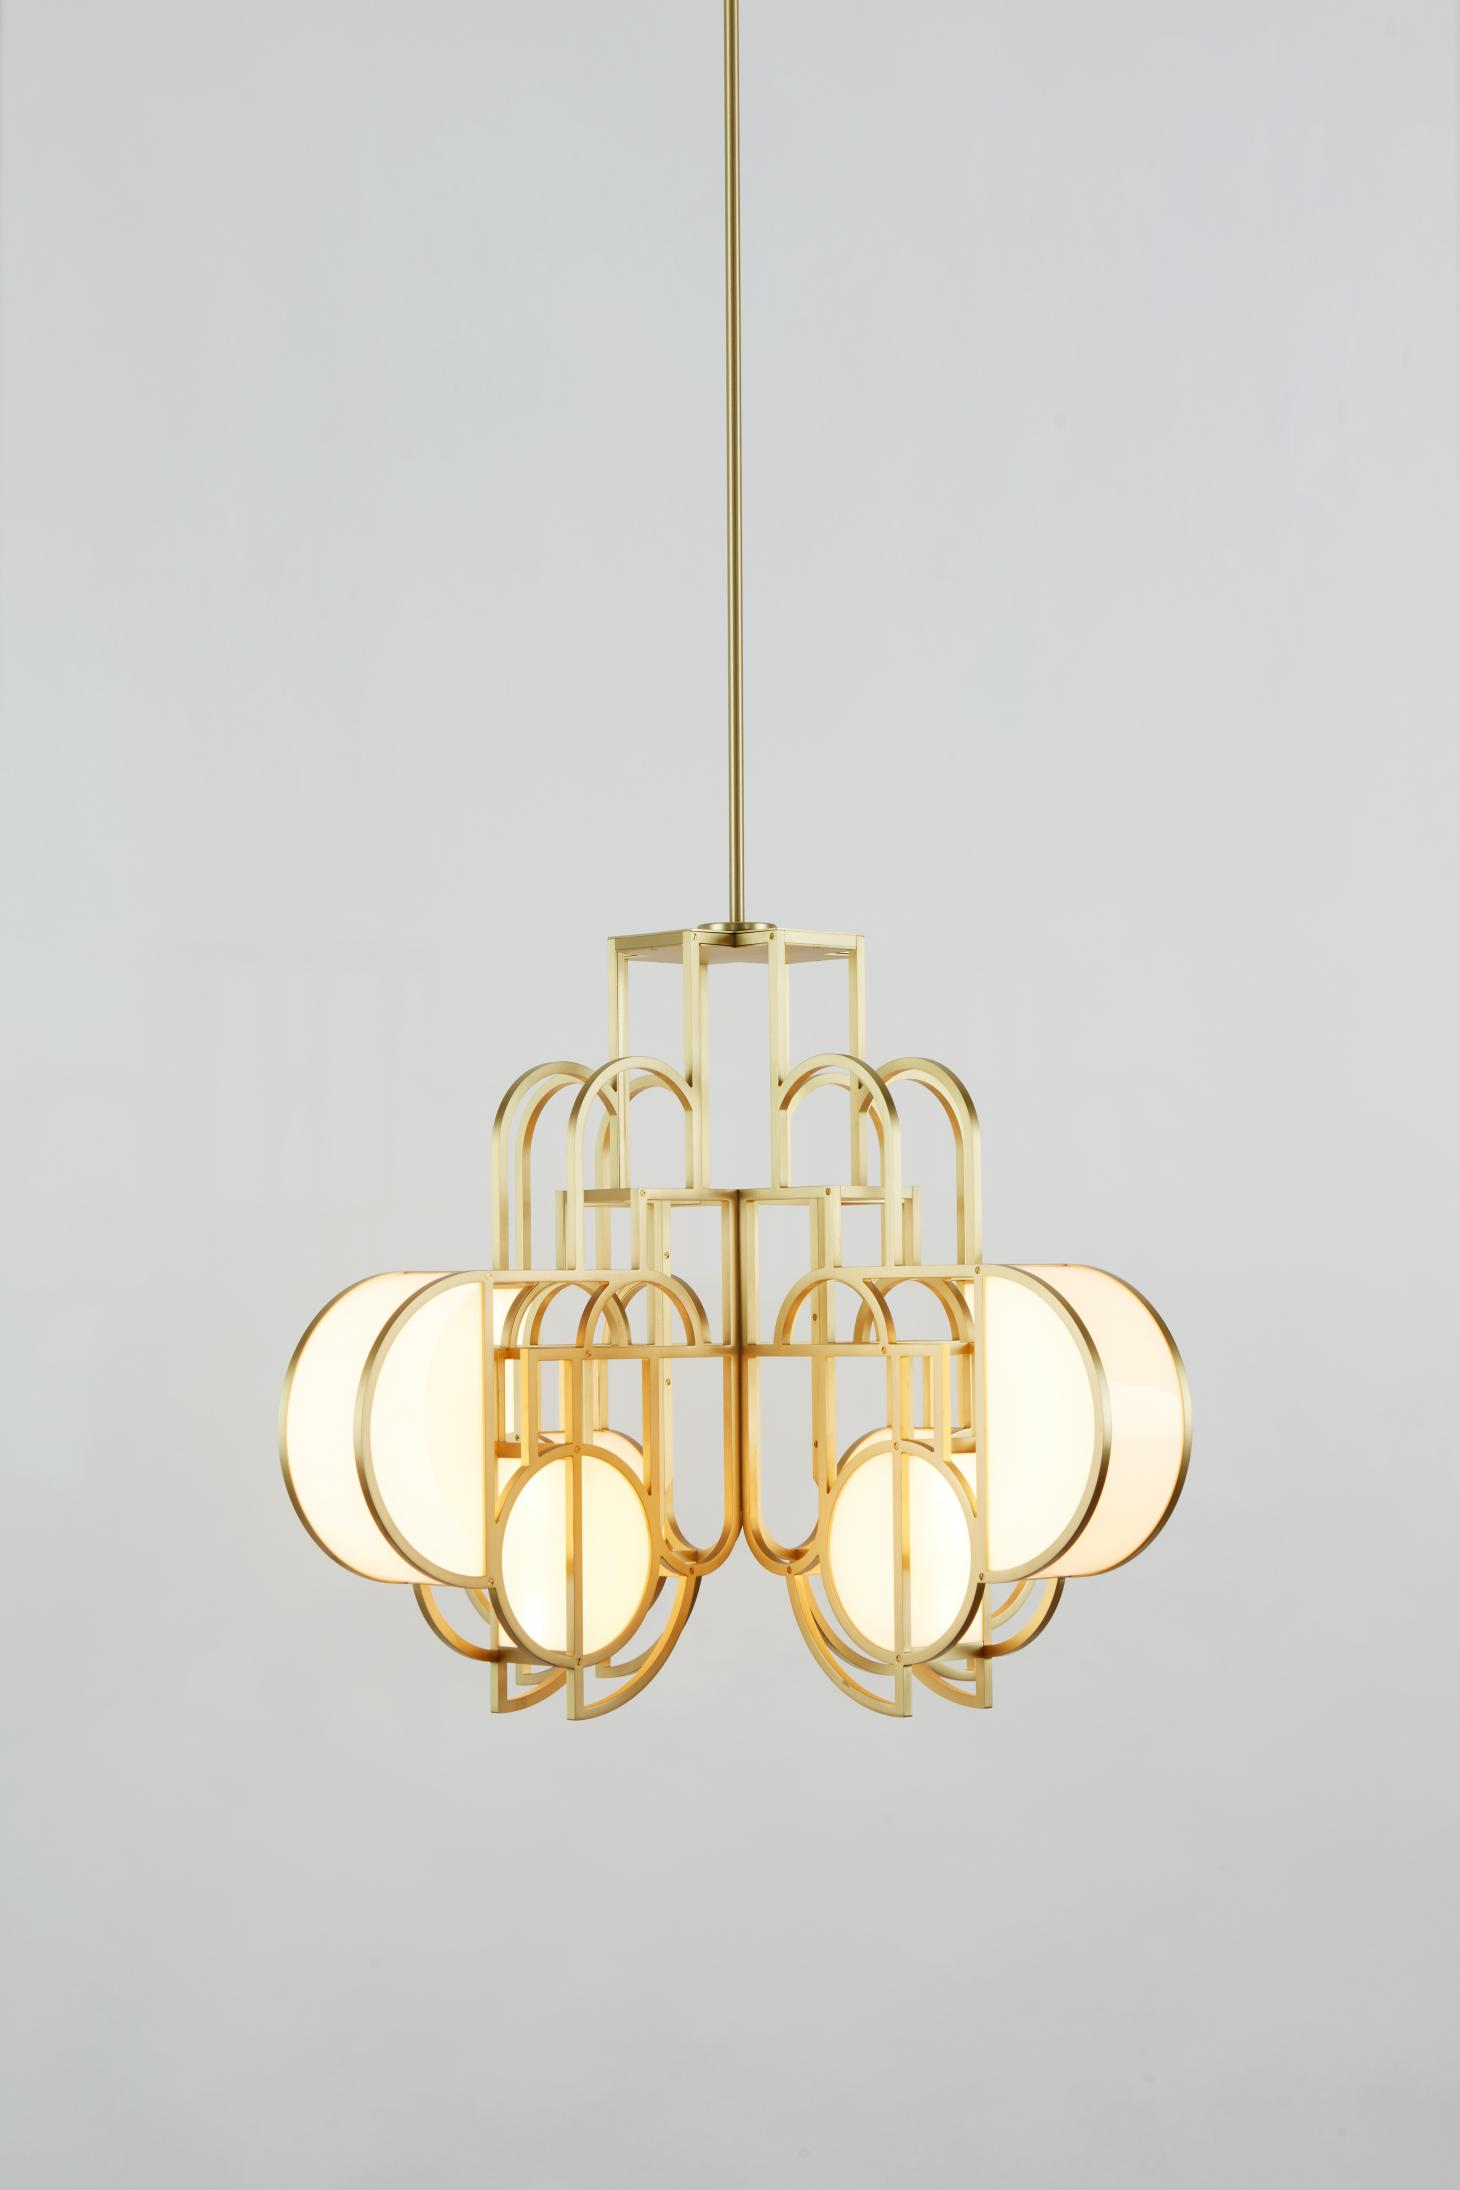 Pendant light chandelier by Lara Bohinc for Roll & Hill in brushed brass